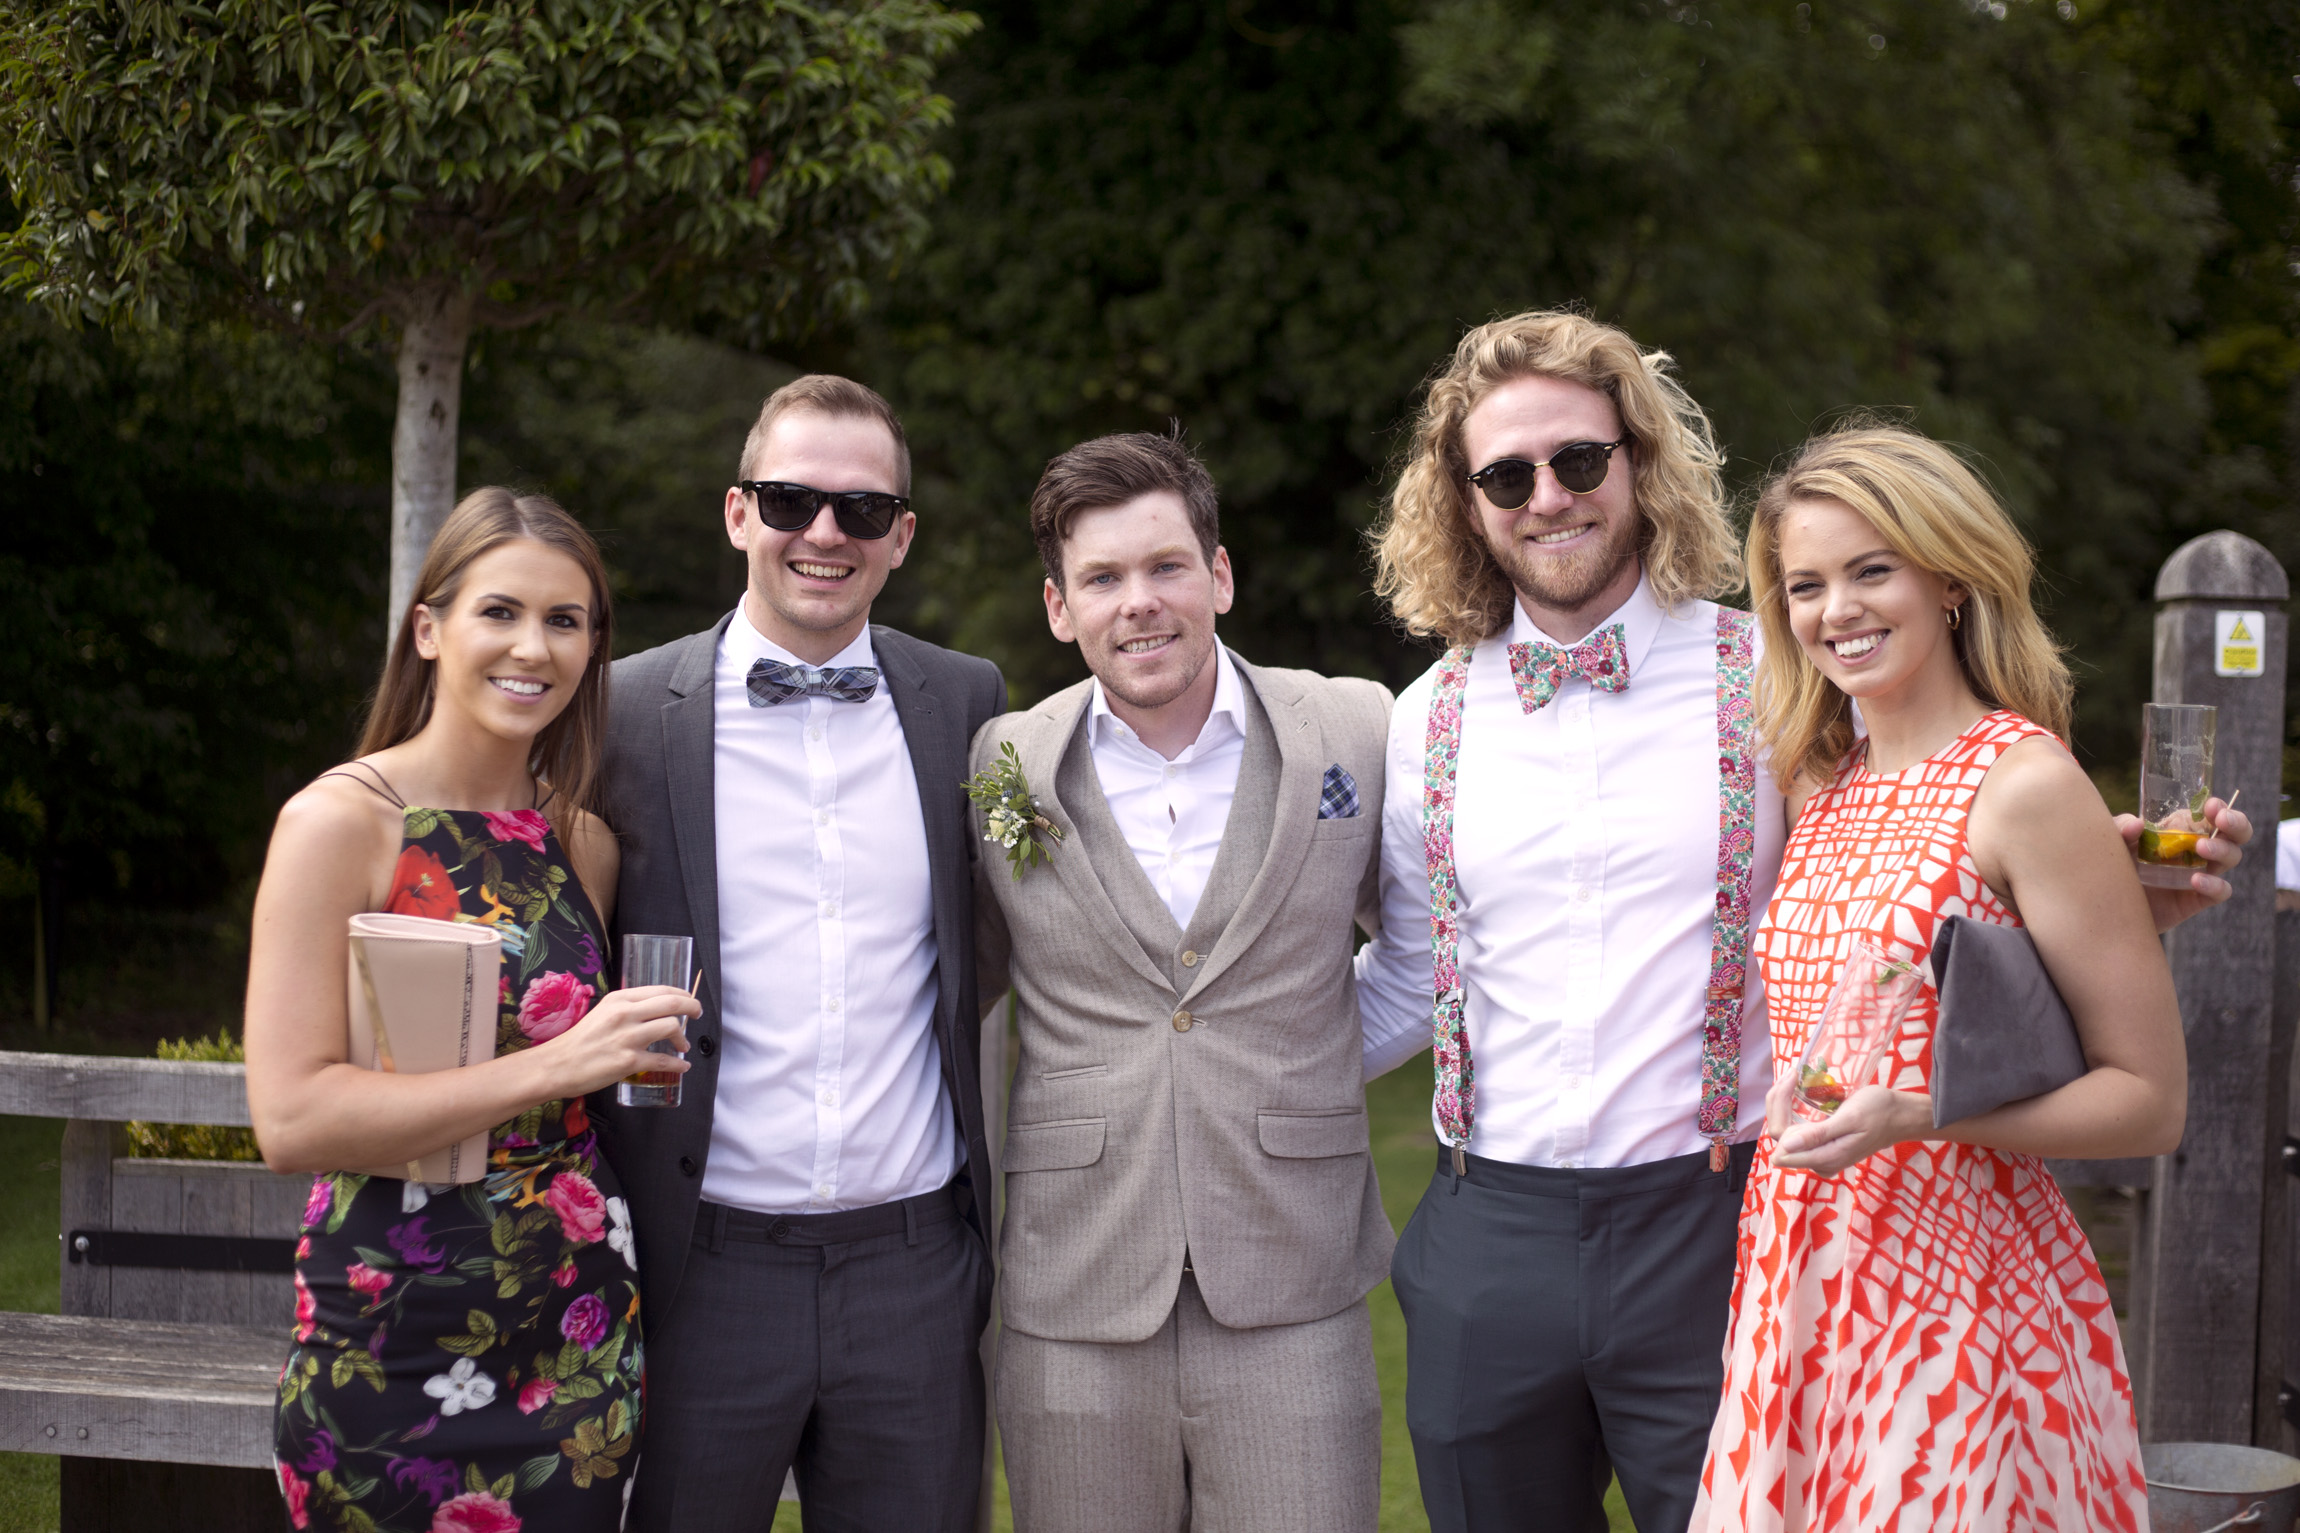 Groom arm in arm with guests Cripps barn outdoor wedding photographer